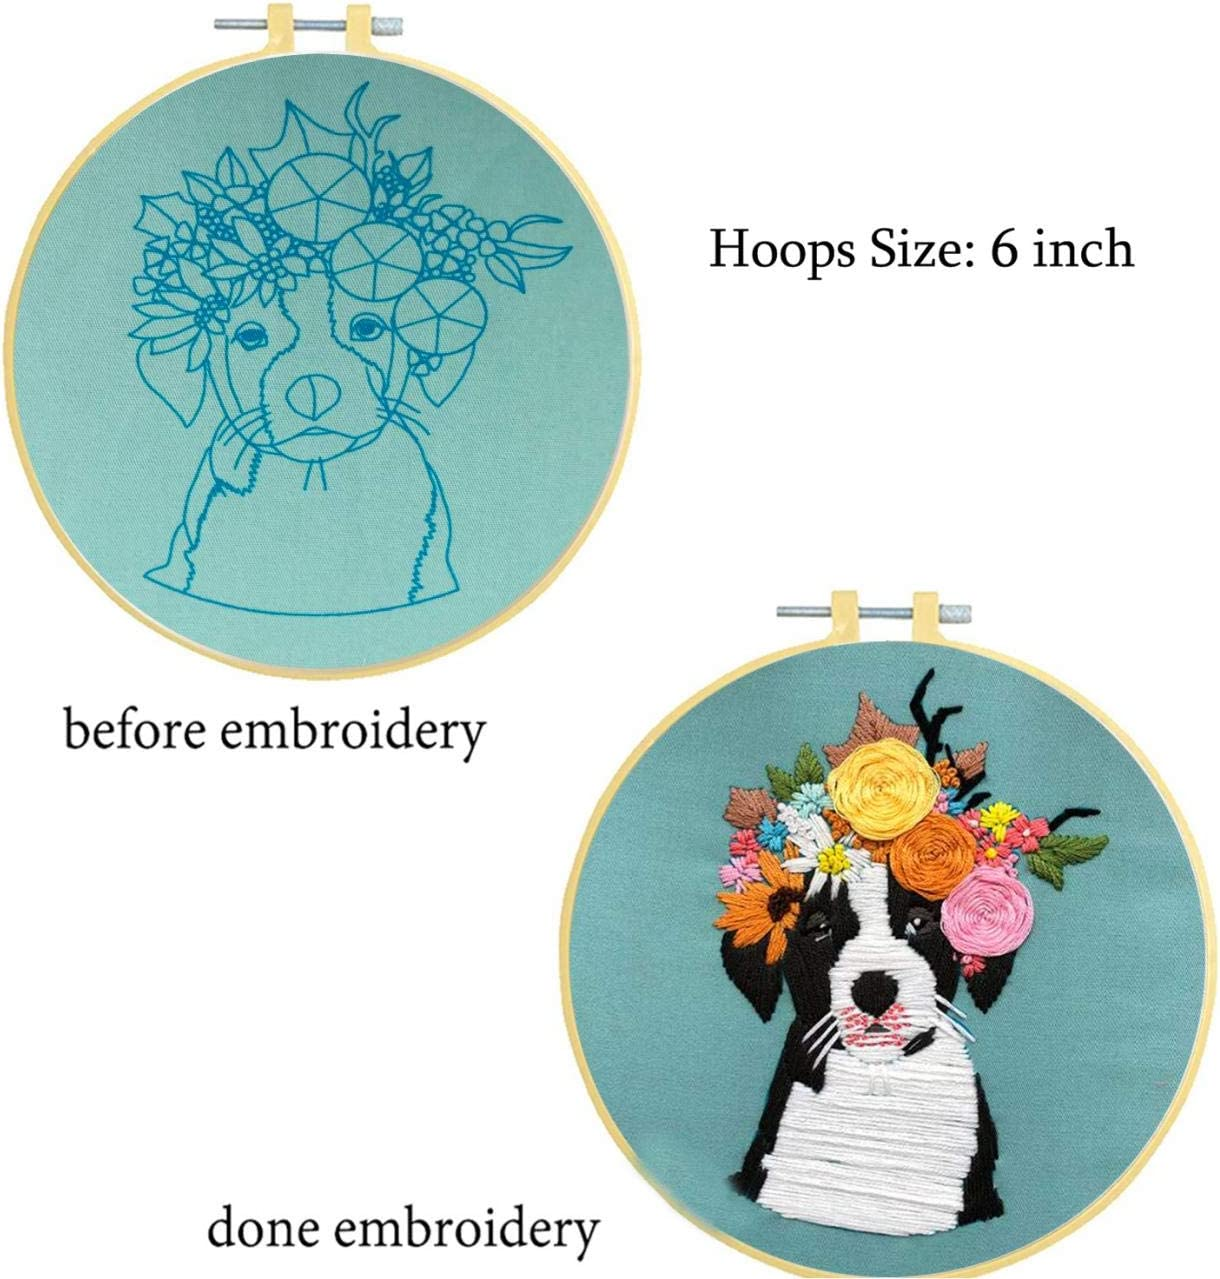 Nuberlic Embroidery Kit Cross Stitch Kit Cute Owl Starter Kit for Adults Kids Stamped with Pattern Embroidery Hoops Cloth Floss Thread Needles